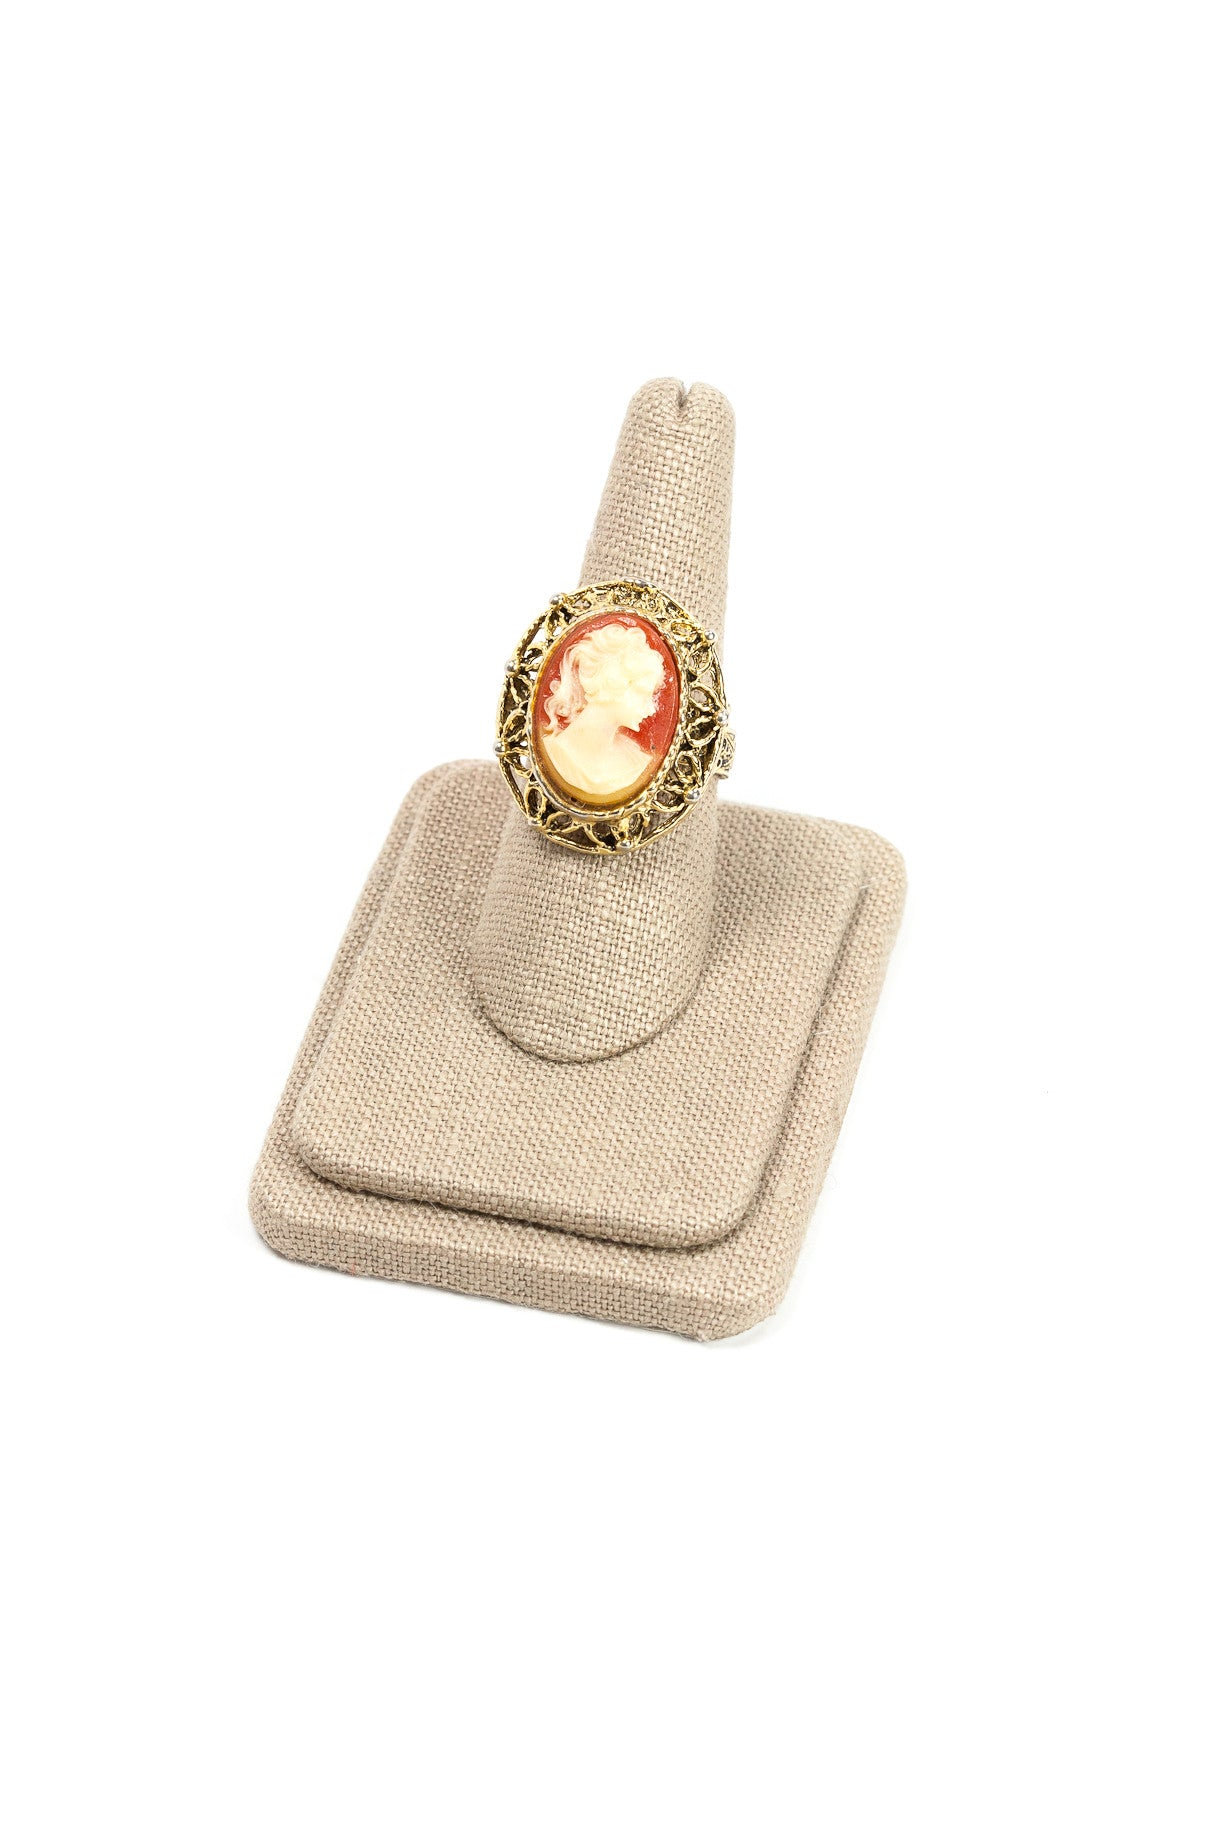 60's__Vintage__Adjustable Cameo Ring